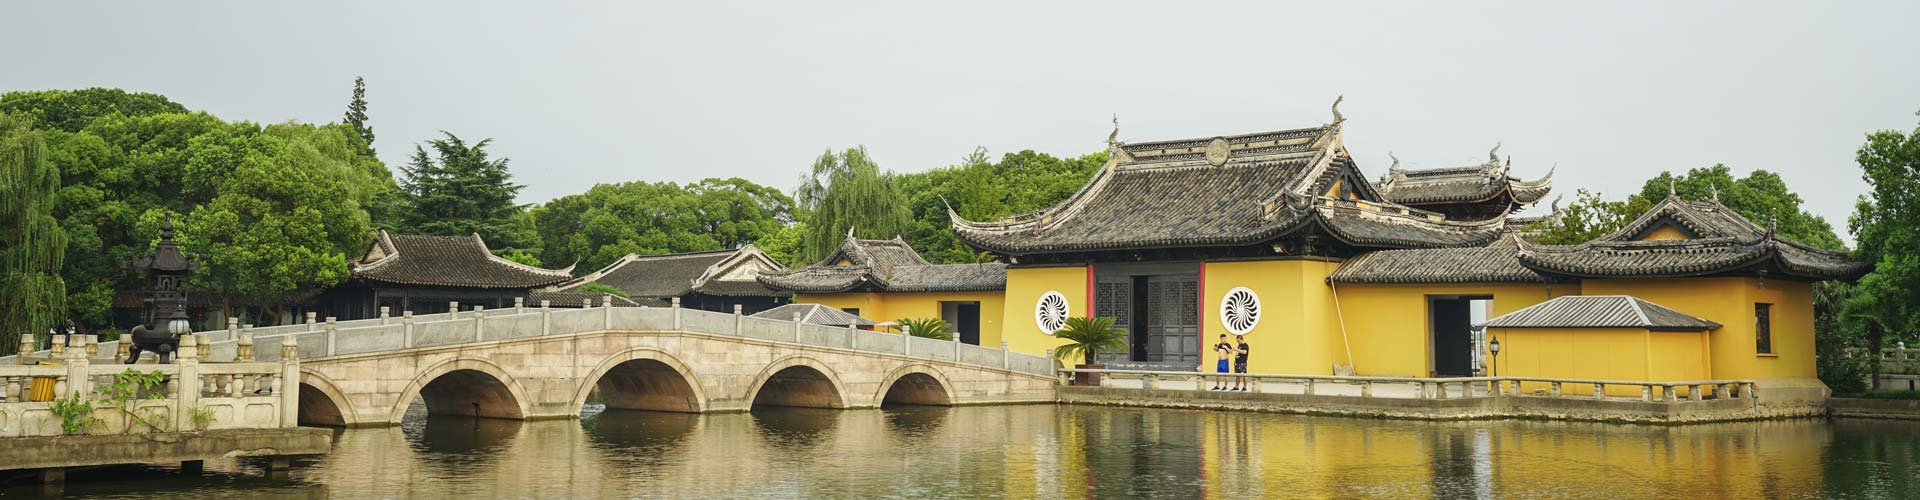 Zhouzhuang Water Village and Shanghai City Tour